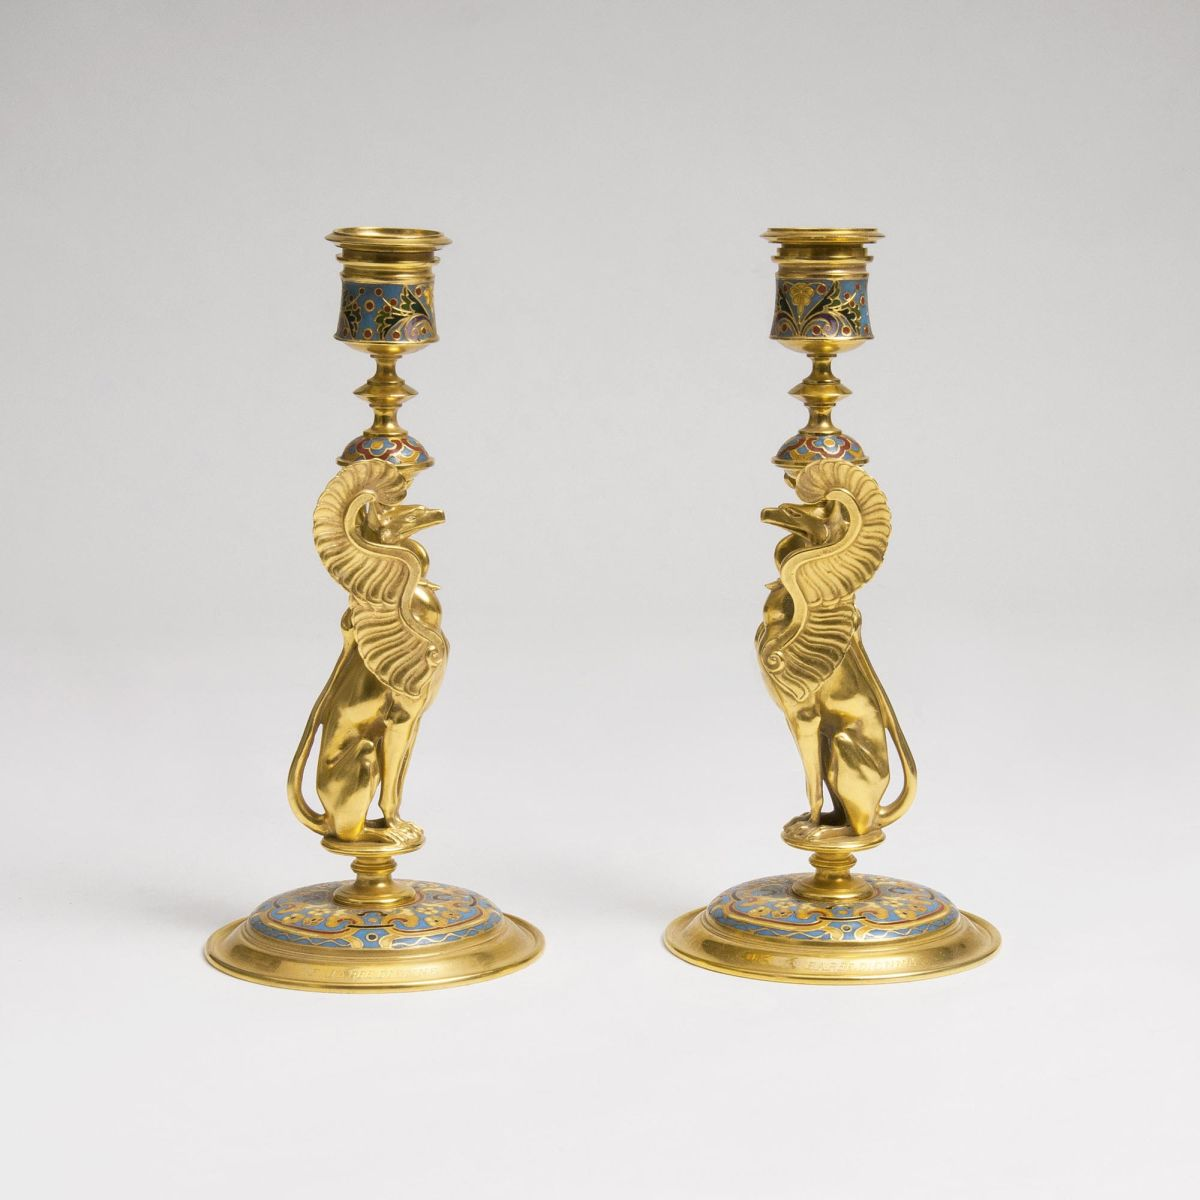 A Pair of Napoléon III Candleholder with Arabesque and Chimera